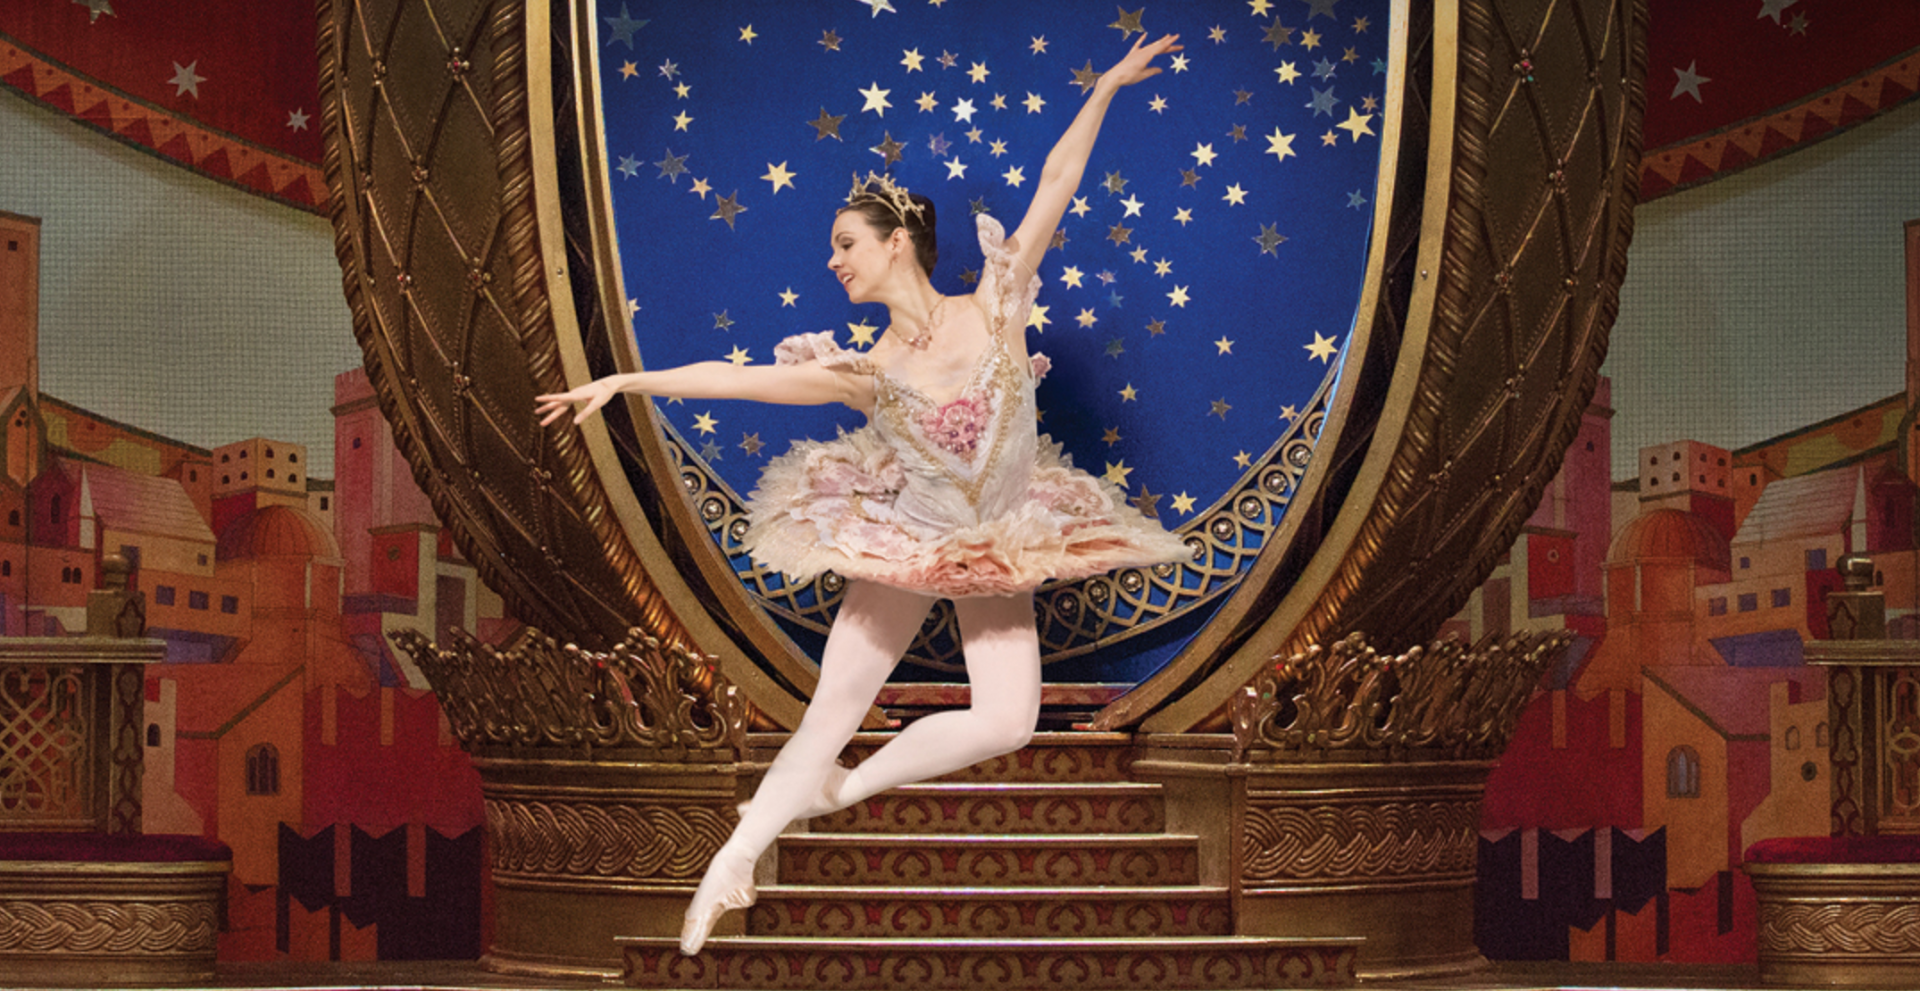 The Nutcracker returns to Toronto this winter with new COVID-19 protocols